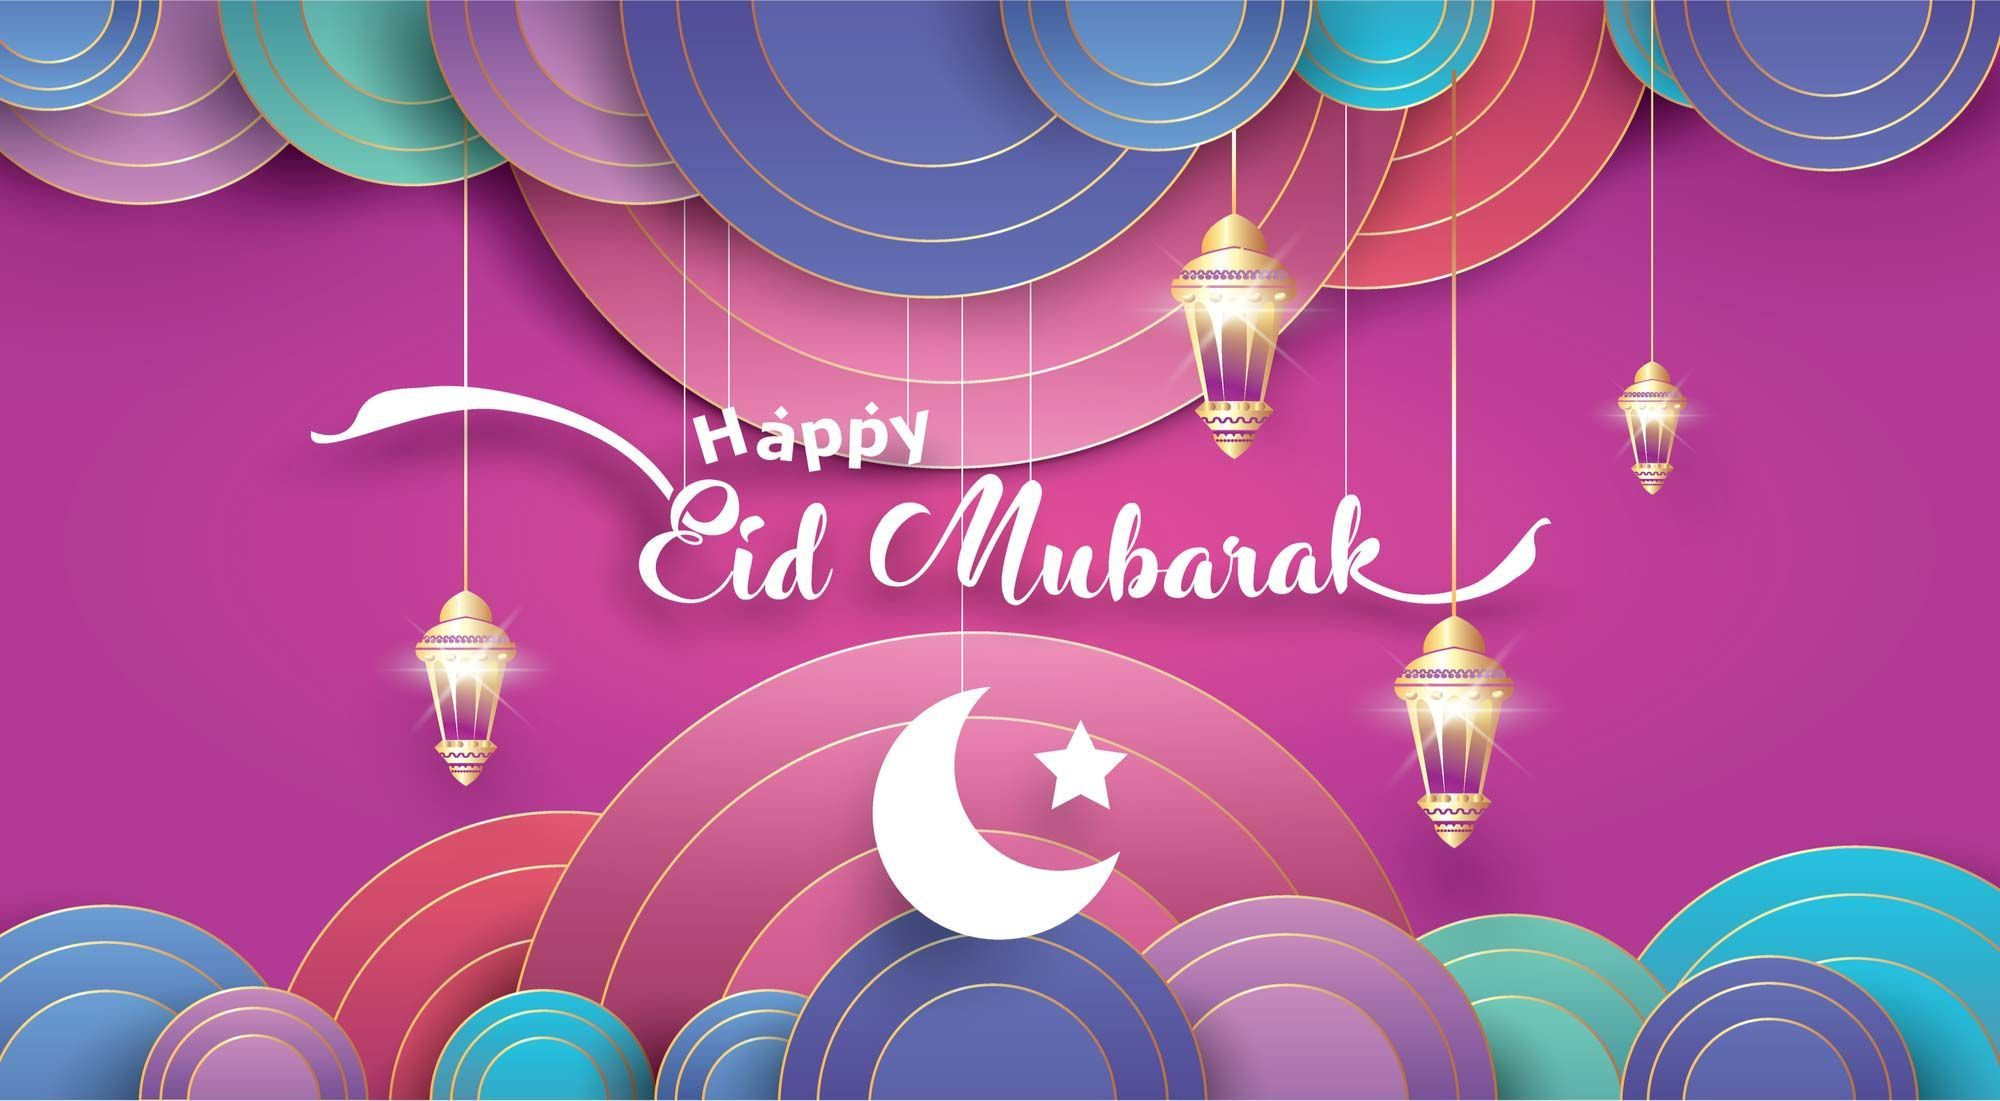 How Can We Have Fun This Eid What Rulings Apply To This Eid Ul Fitr These Questions And Many More Hints Eid Card Designs Happy Eid Greeting Card Illustration